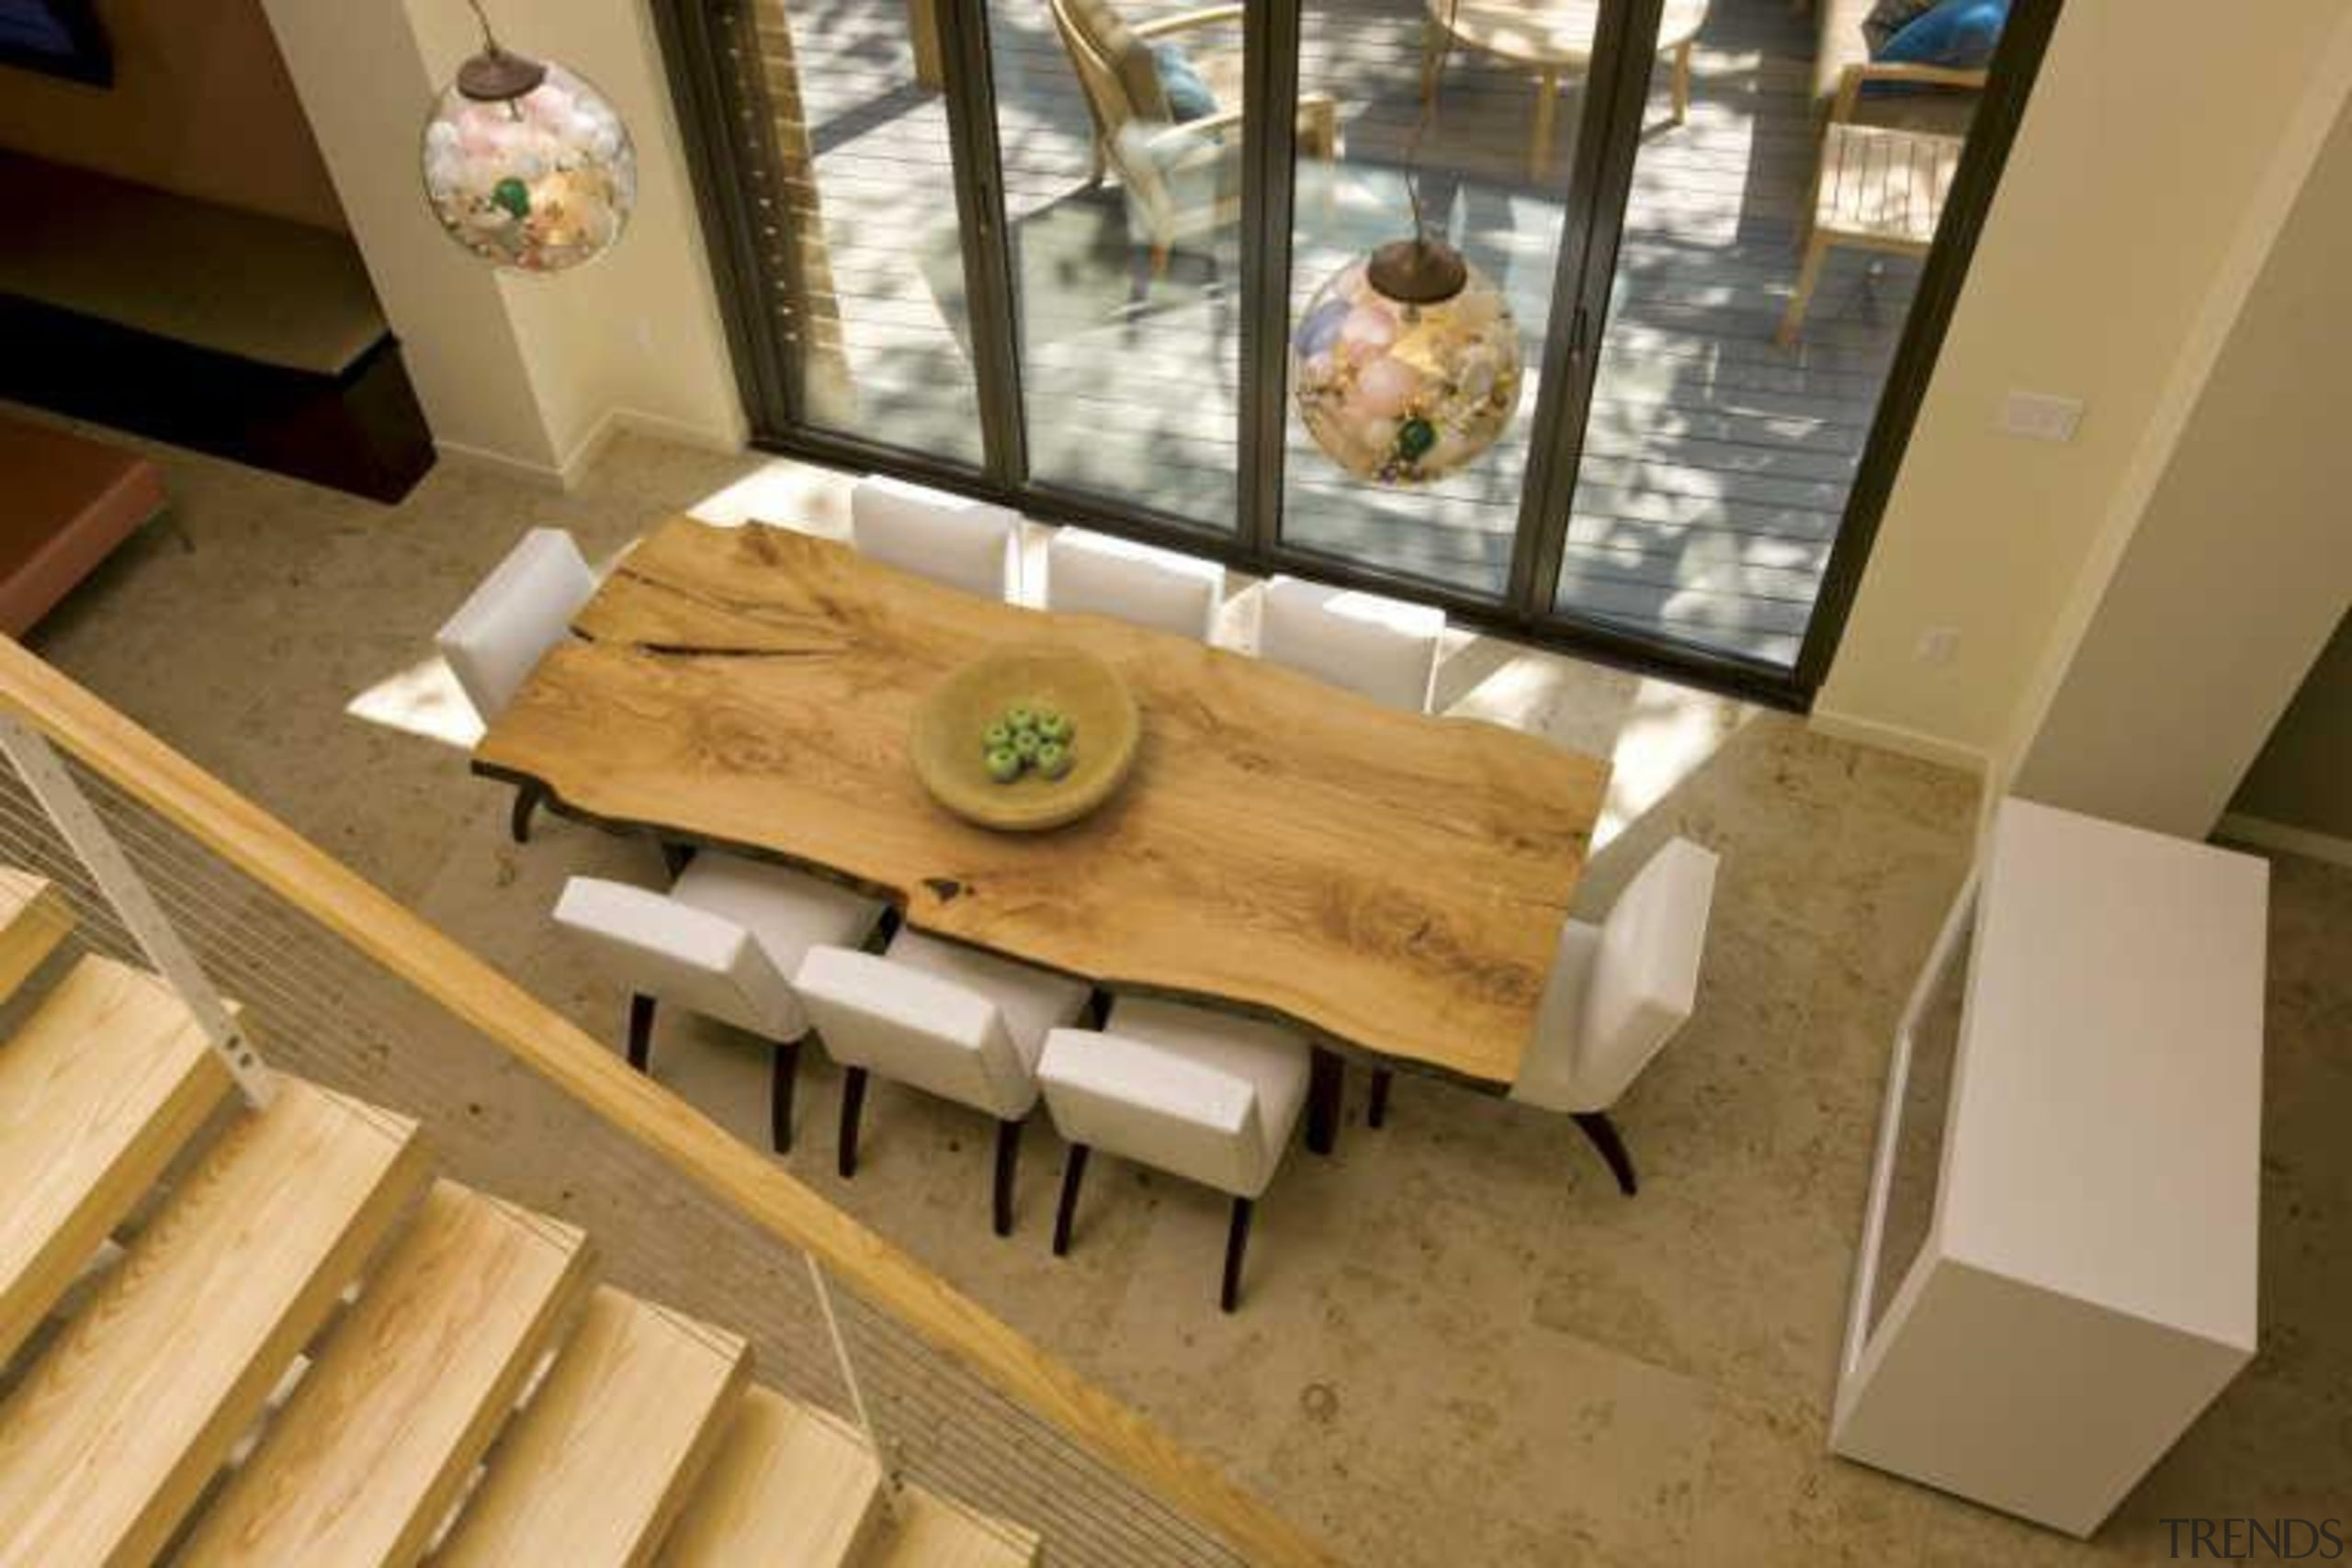 Warmboard provides and eco friendly, quiet and efficient architecture, dining room, floor, flooring, furniture, interior design, product design, room, table, brown, orange